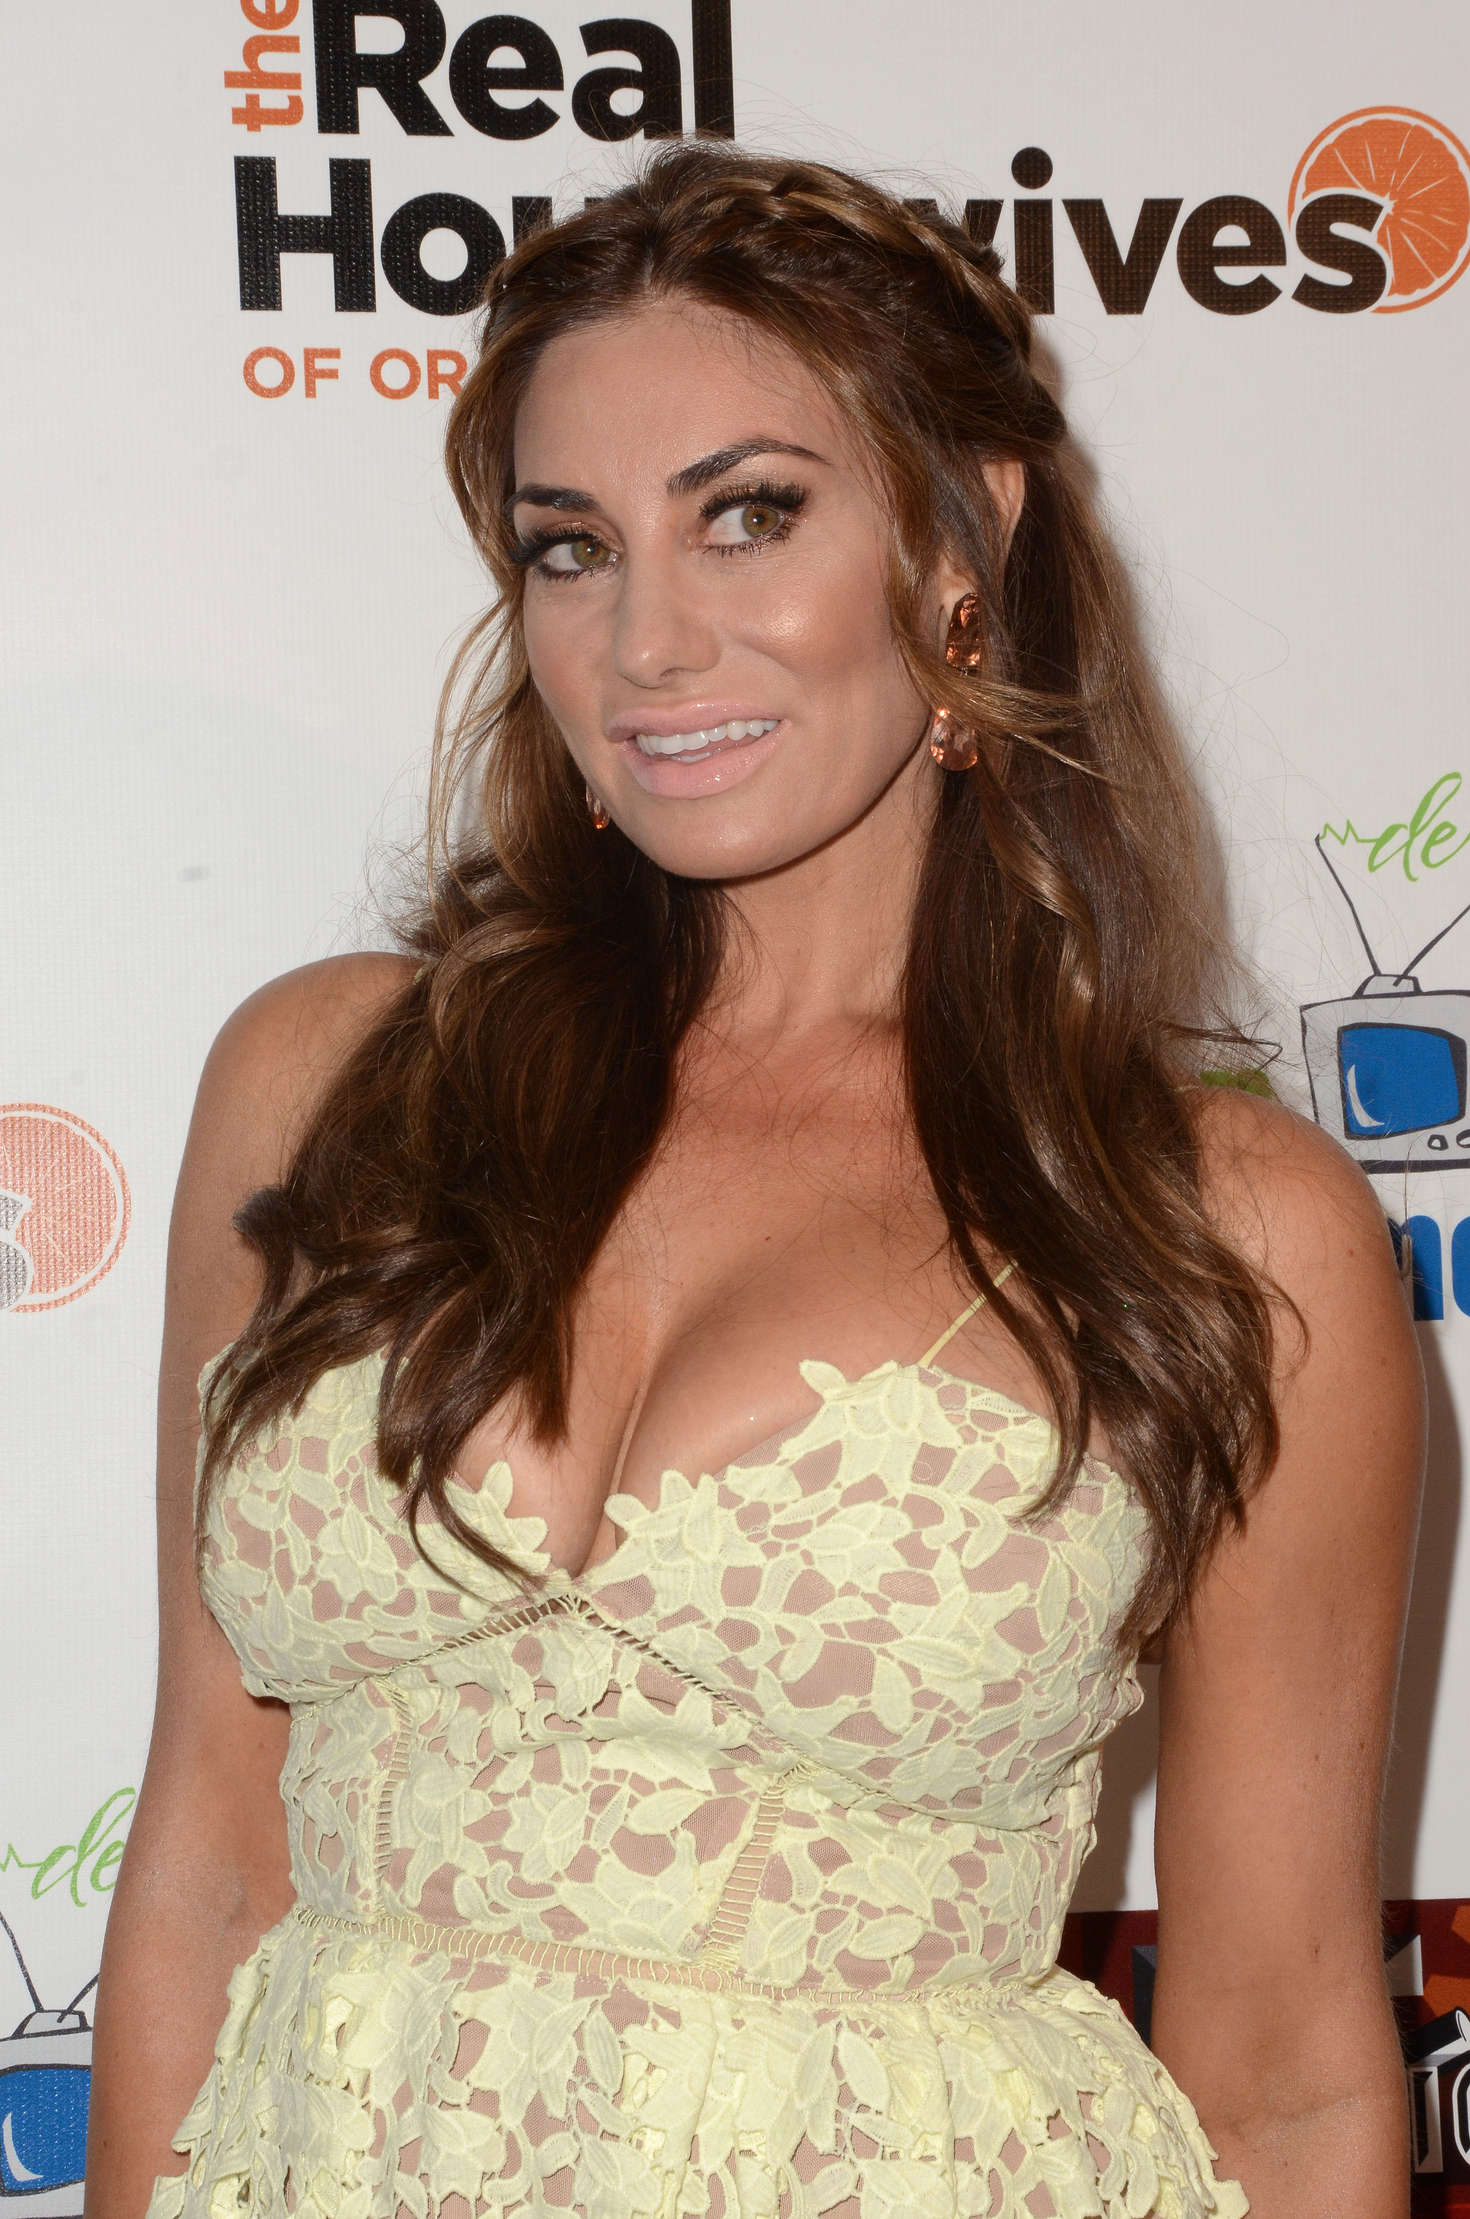 Lizzie Rovsek The Real Housewives Of Orange County